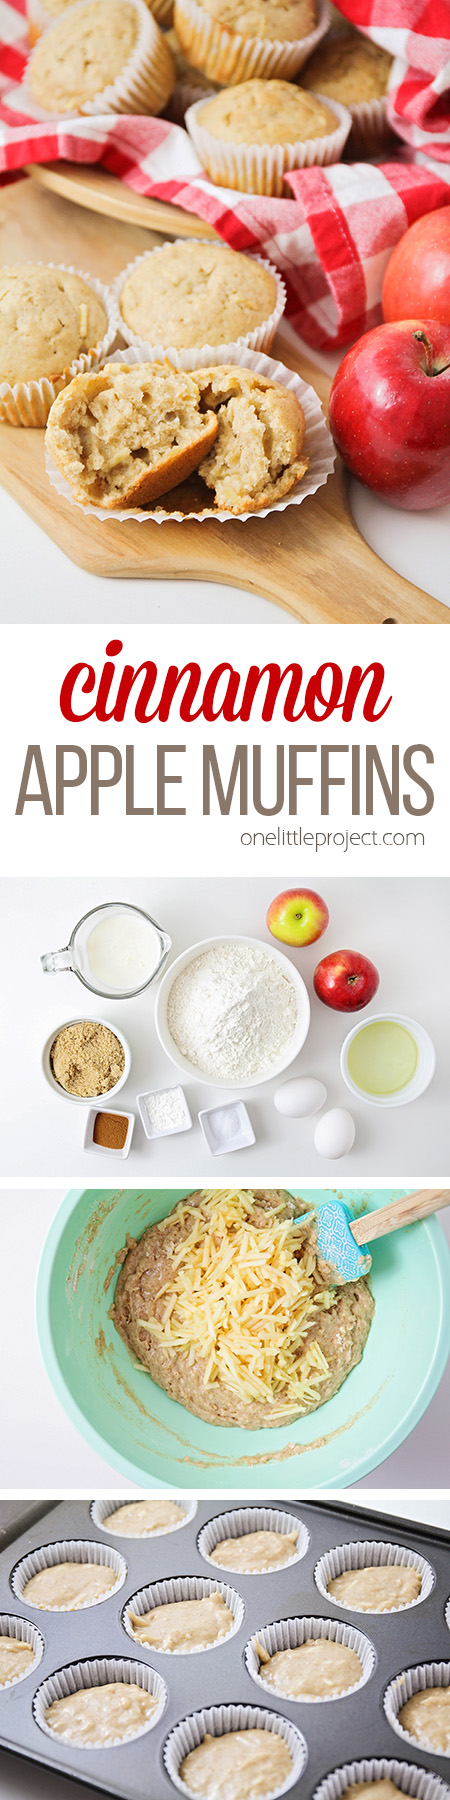 These delicious and tender cinnamon apple muffins are so easy to make, and bursting with fall flavors. They're the perfect way to start the day!